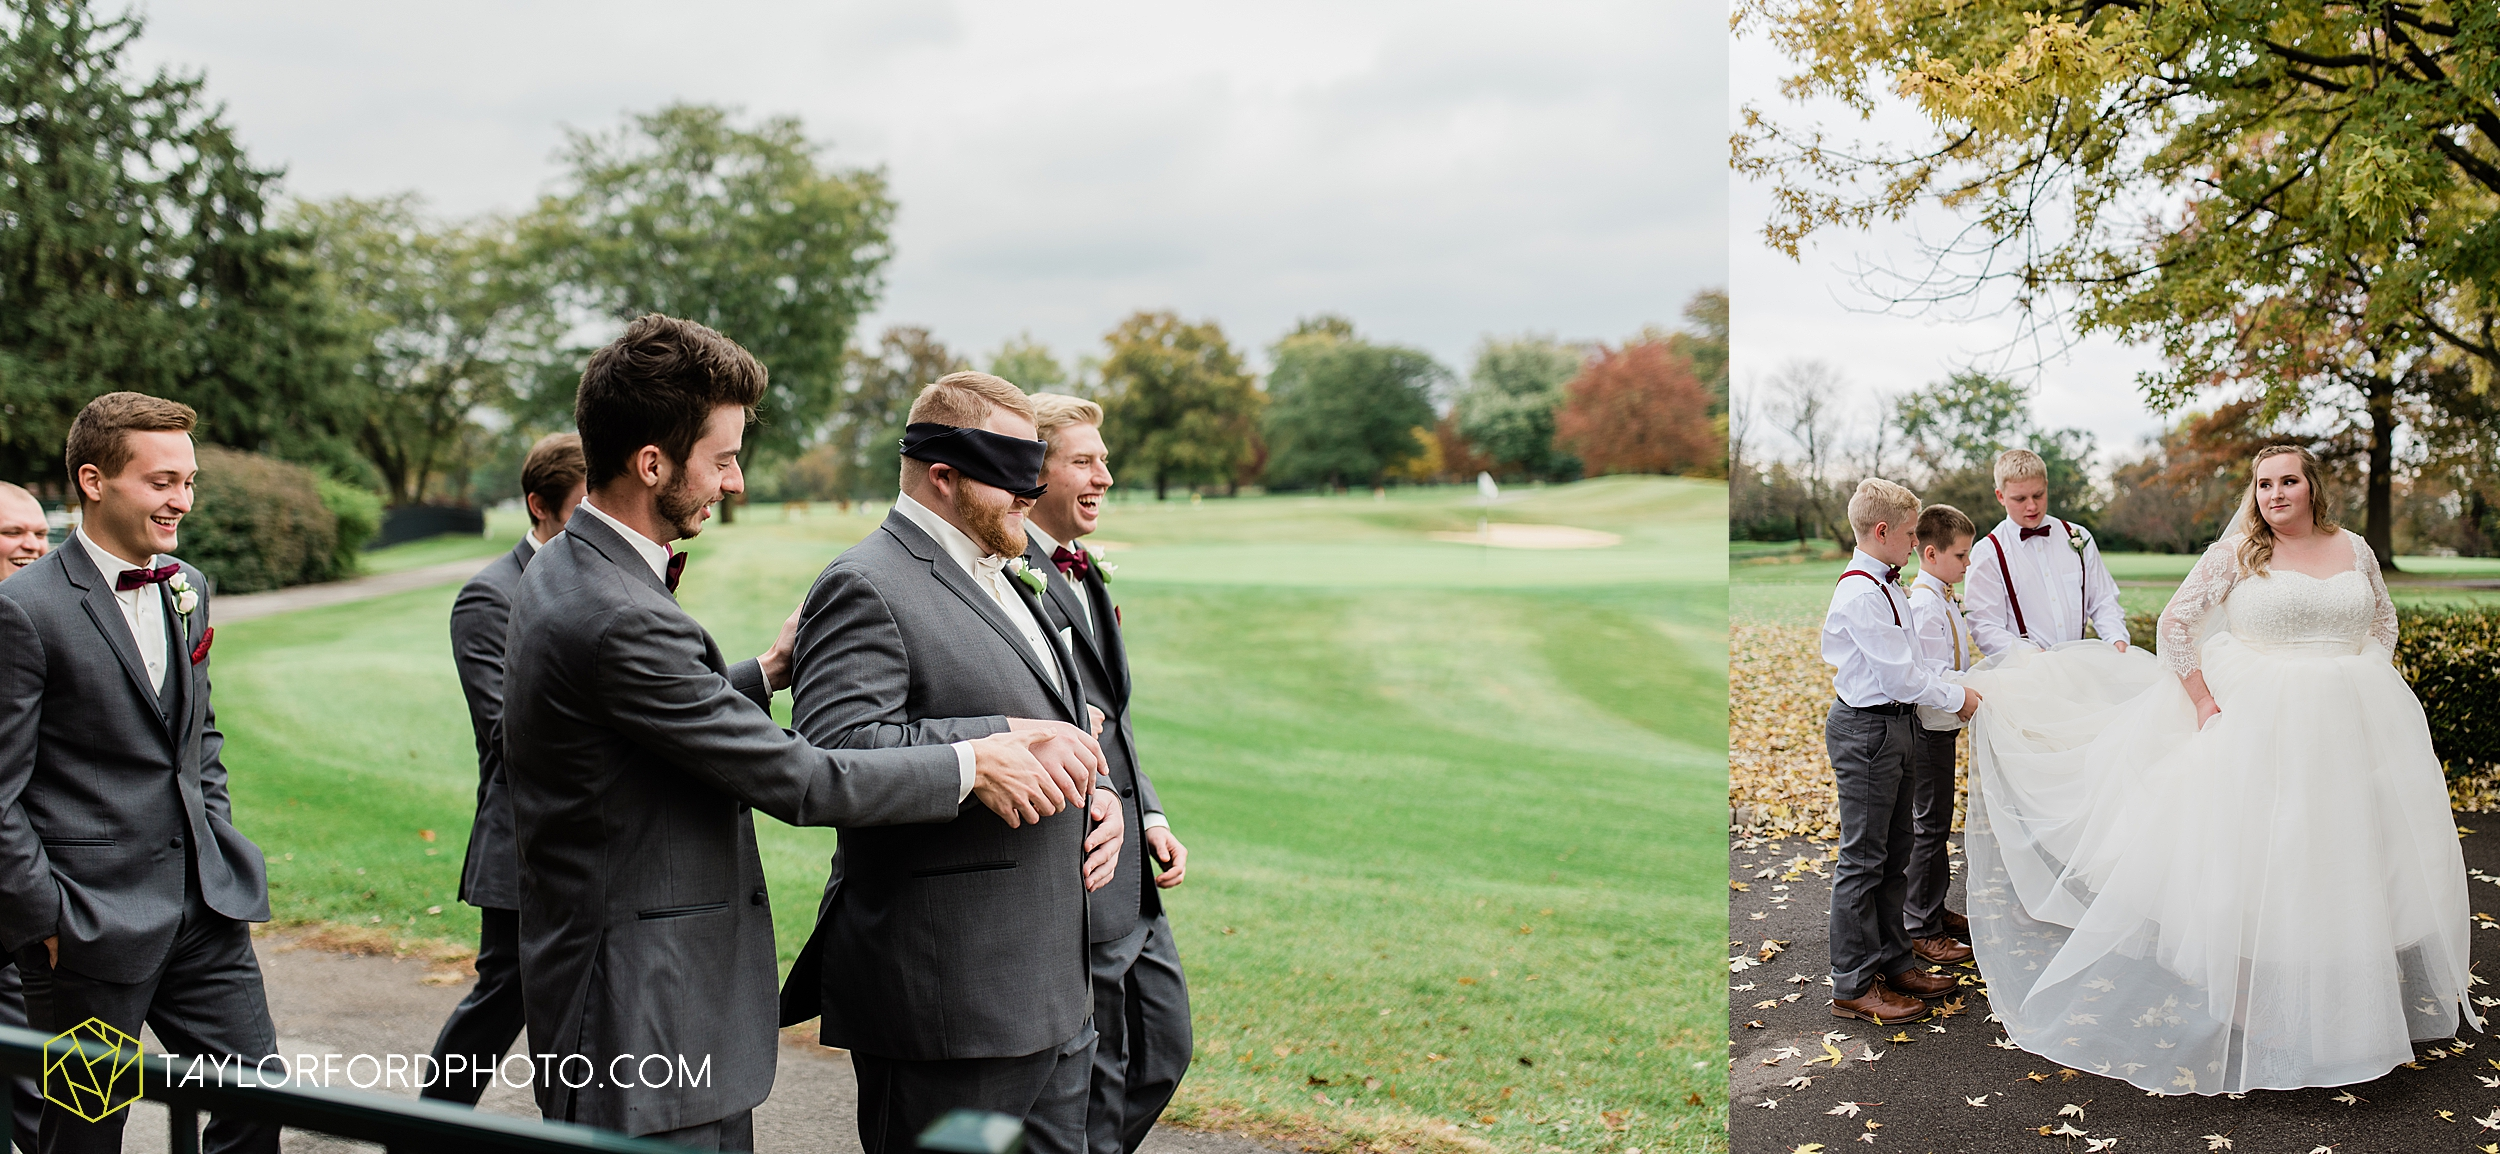 madi-devin-getts-minear-orchard-ridge-golf-club-outdoor-pin-up-curls-downtown-southwest-fort-wayne-indiana-wedding-fall-photographer-taylor-ford-photography_1416.jpg